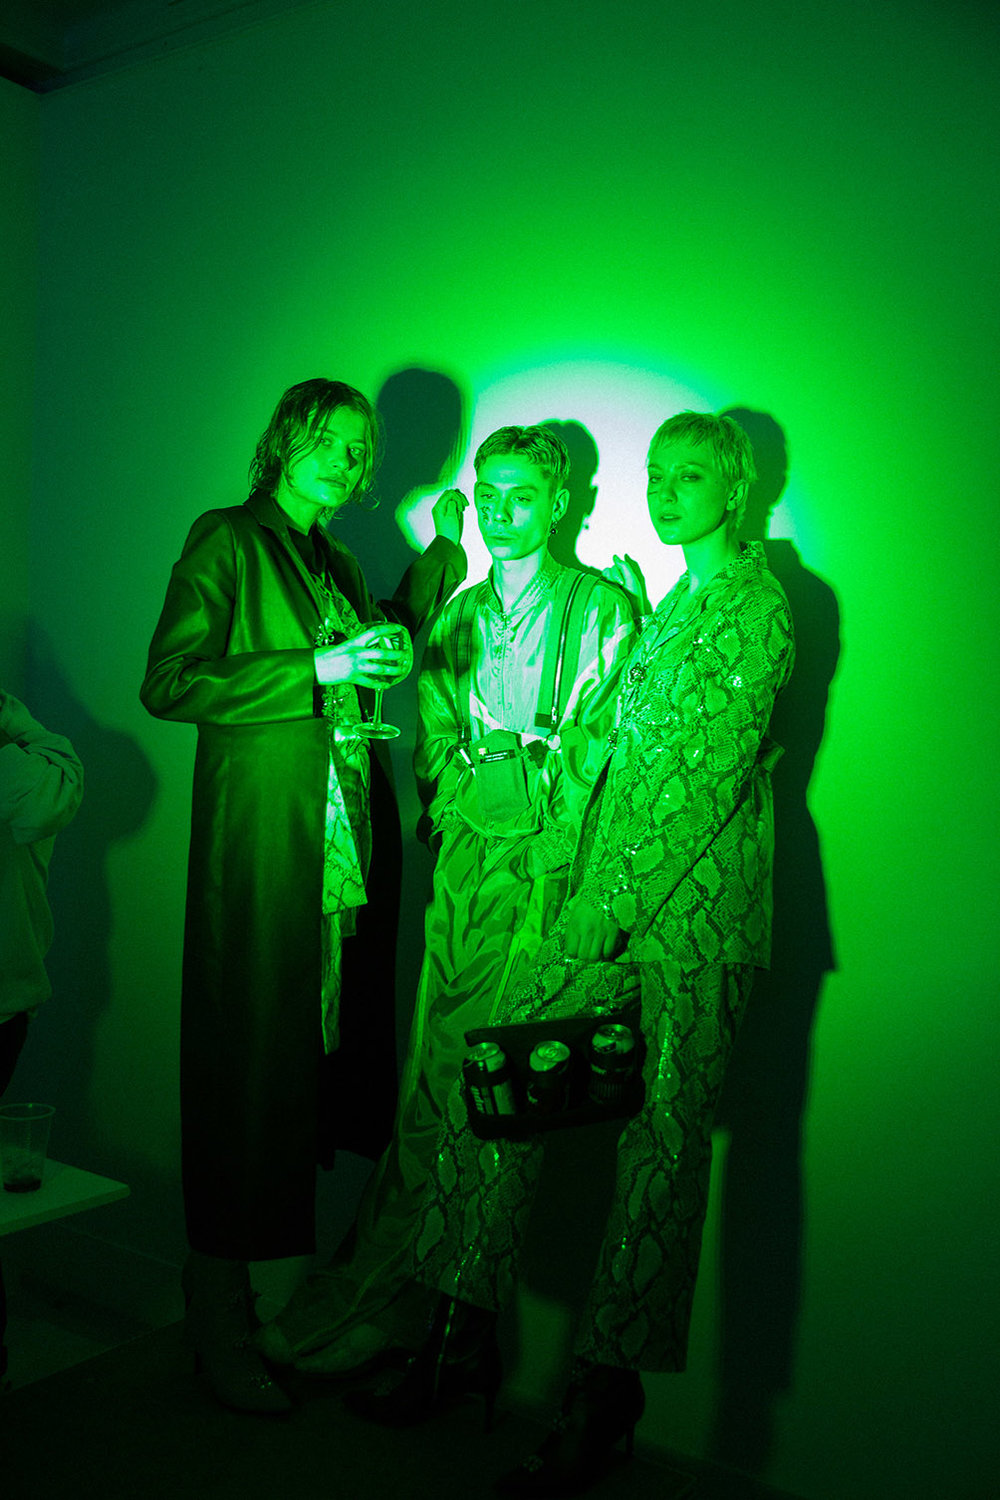 event LEO aw1819 23 low res.jpg